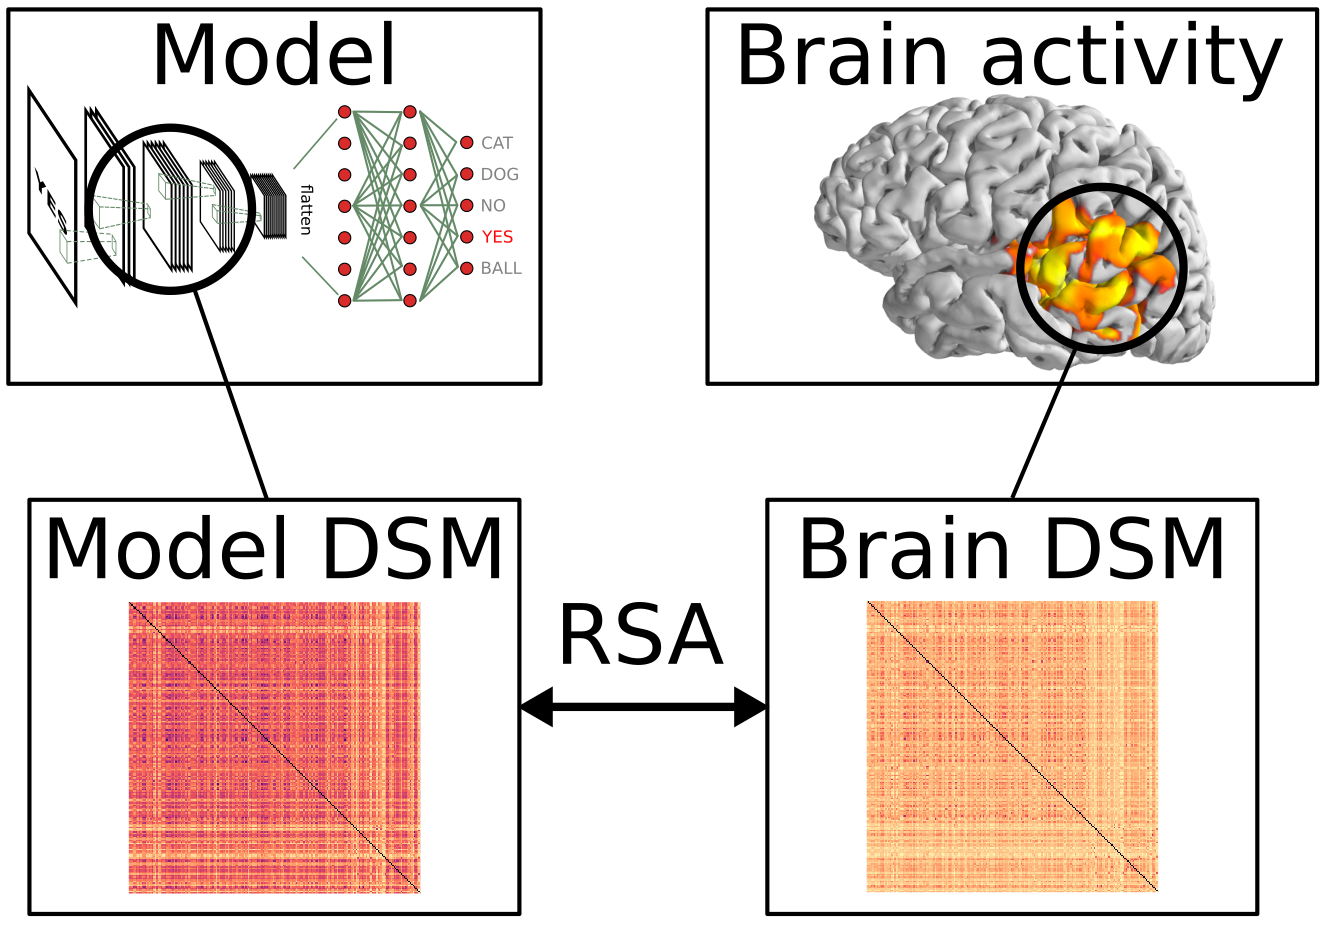 Overview of the RSA technique